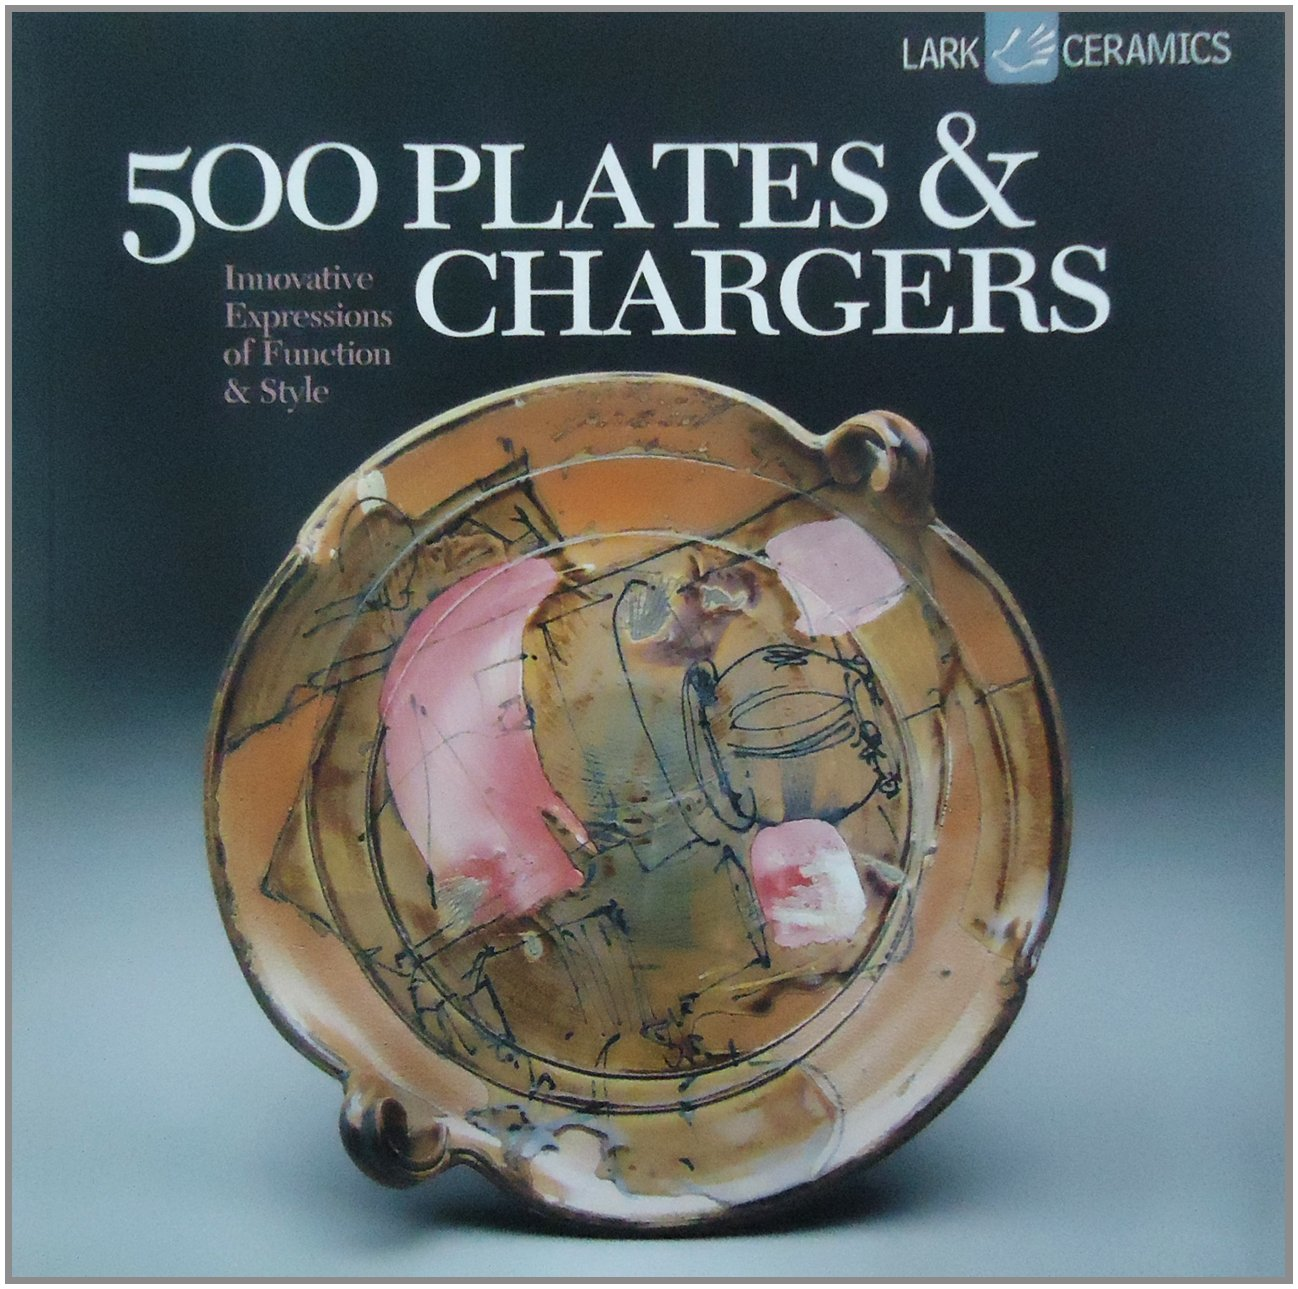 500 Plates & Chargers: Innovative Expressions of Function & Style (500 Series)